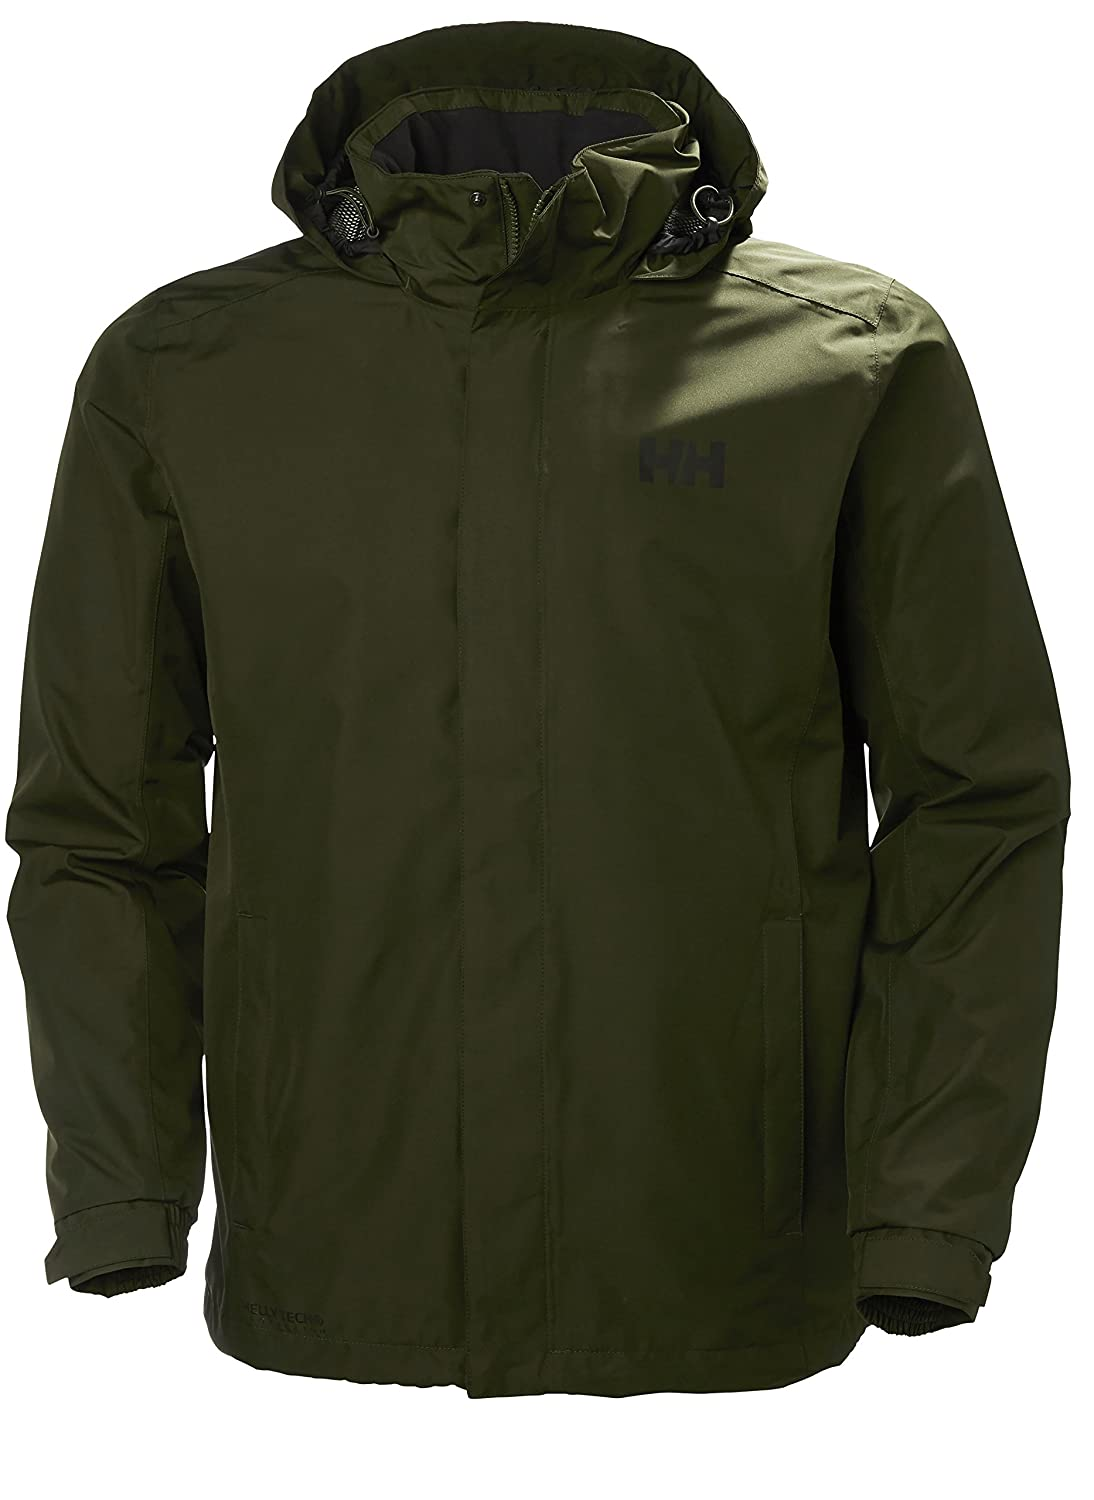 Helly Hansen Men's Voss Rain Jacket NSR- Shin Textile Solutions NS53C01